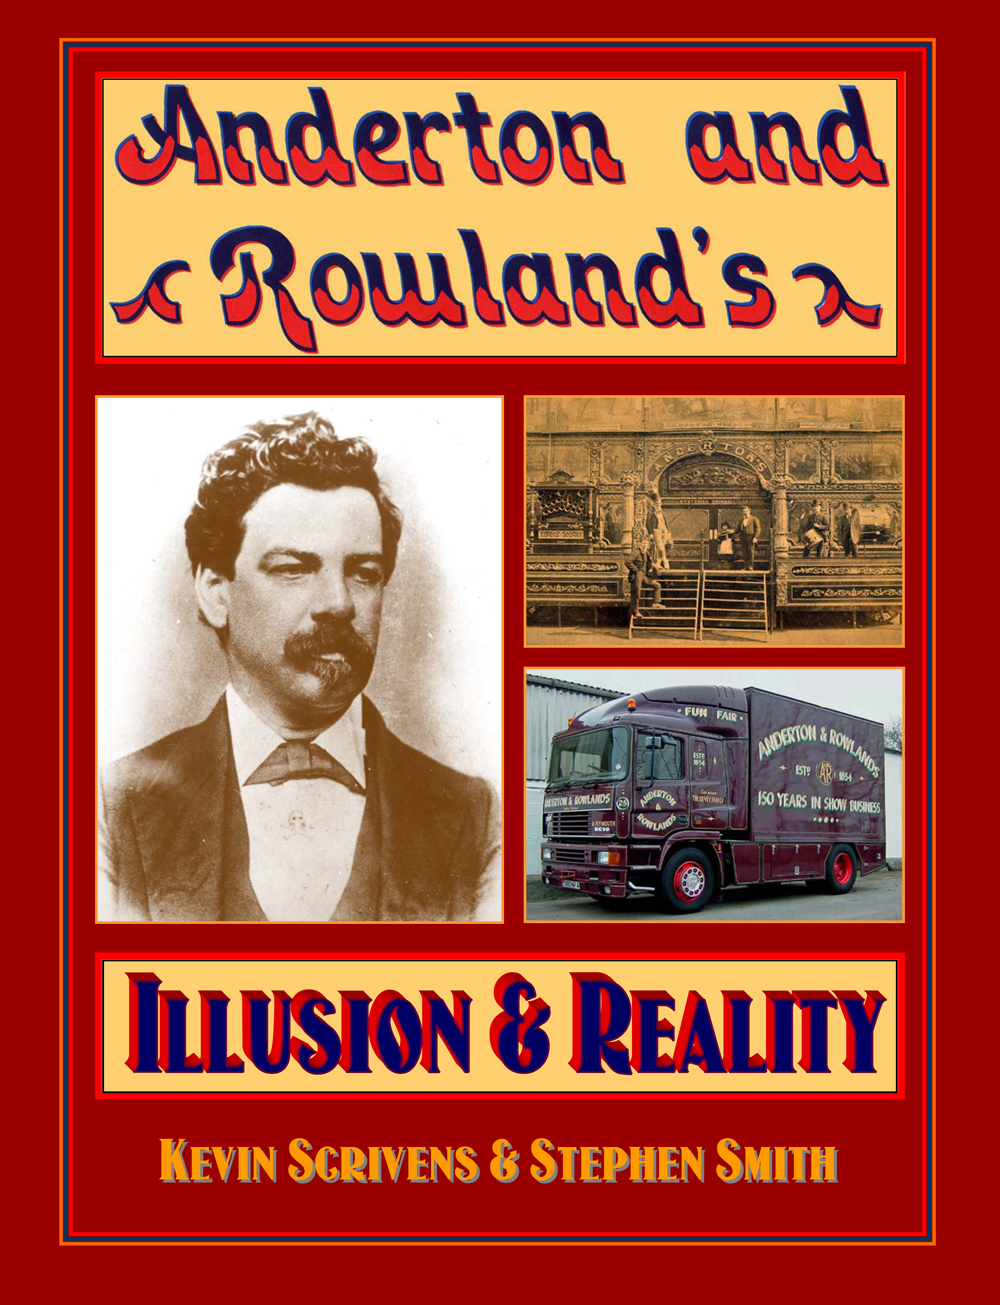 Anderton and Rowland's Illusion and Reality Stephen Smith and Kevin Scrivens